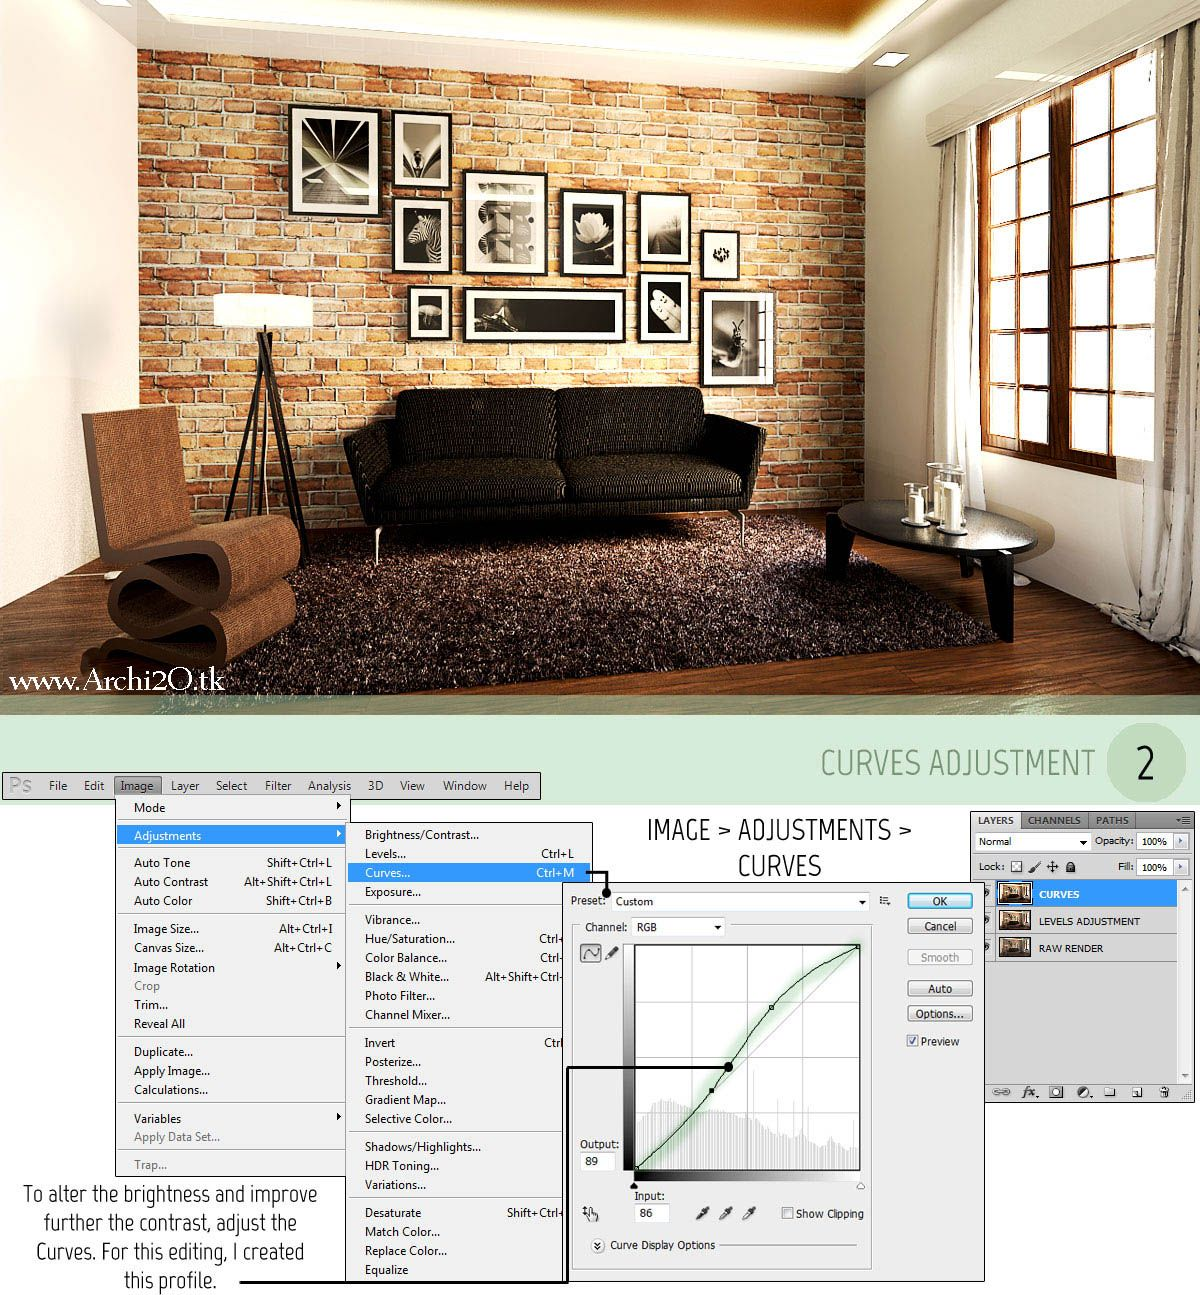 3d Max Home Design Tutorial: Vray For SketchUp Tutorial Part 3: POST-PROCESSING Full